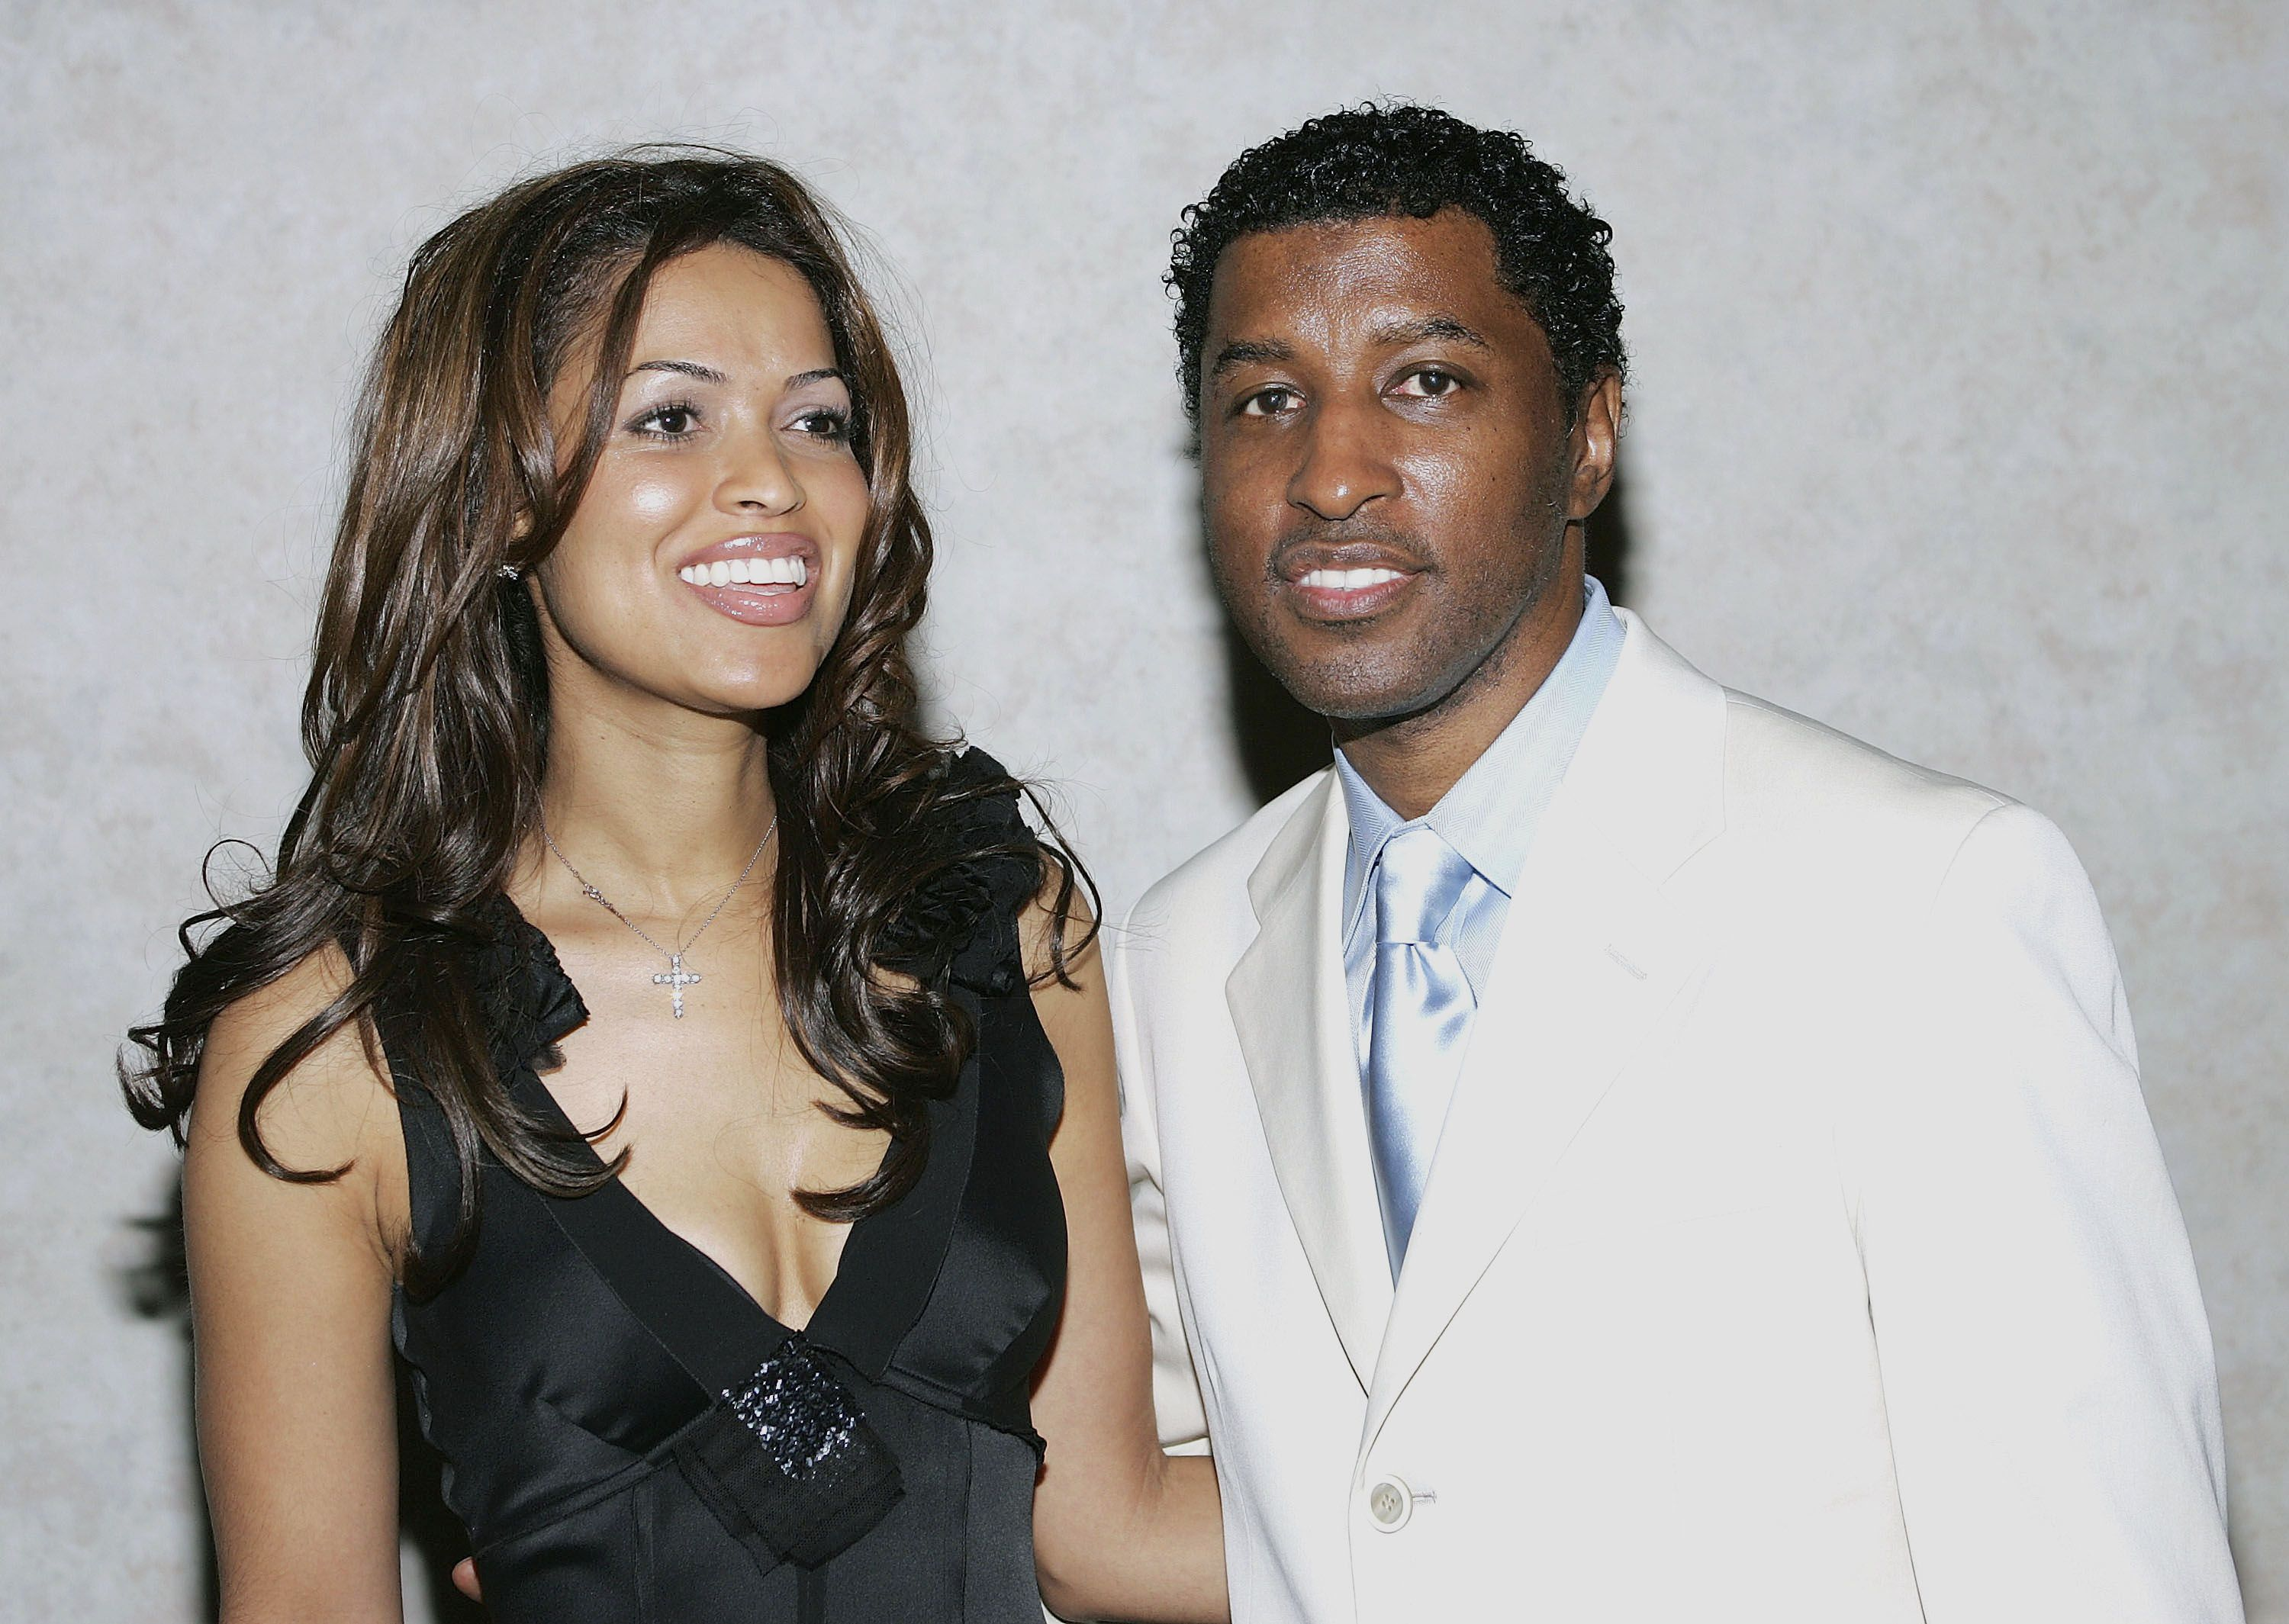 Tracey Edmonds and Babyface attend the Fourth Annual Excellence In Media Awards at the Beverly Hilton Hotel on March 17, 2005  | Source: Getty Images